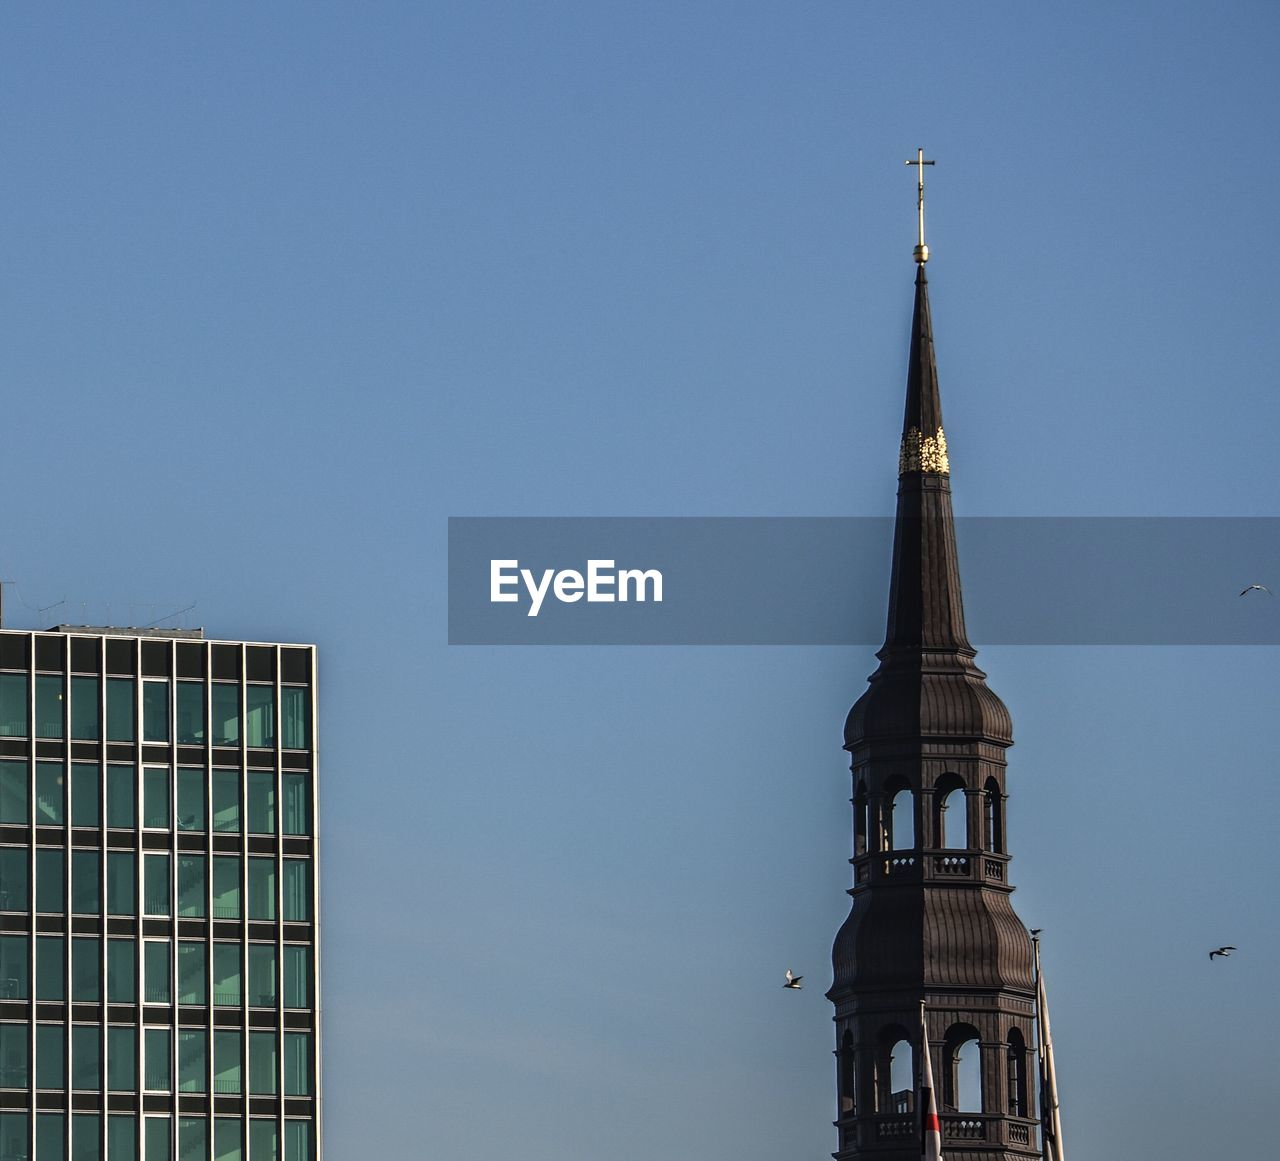 architecture, religion, clear sky, built structure, spirituality, place of worship, building exterior, no people, day, modern, outdoors, sky